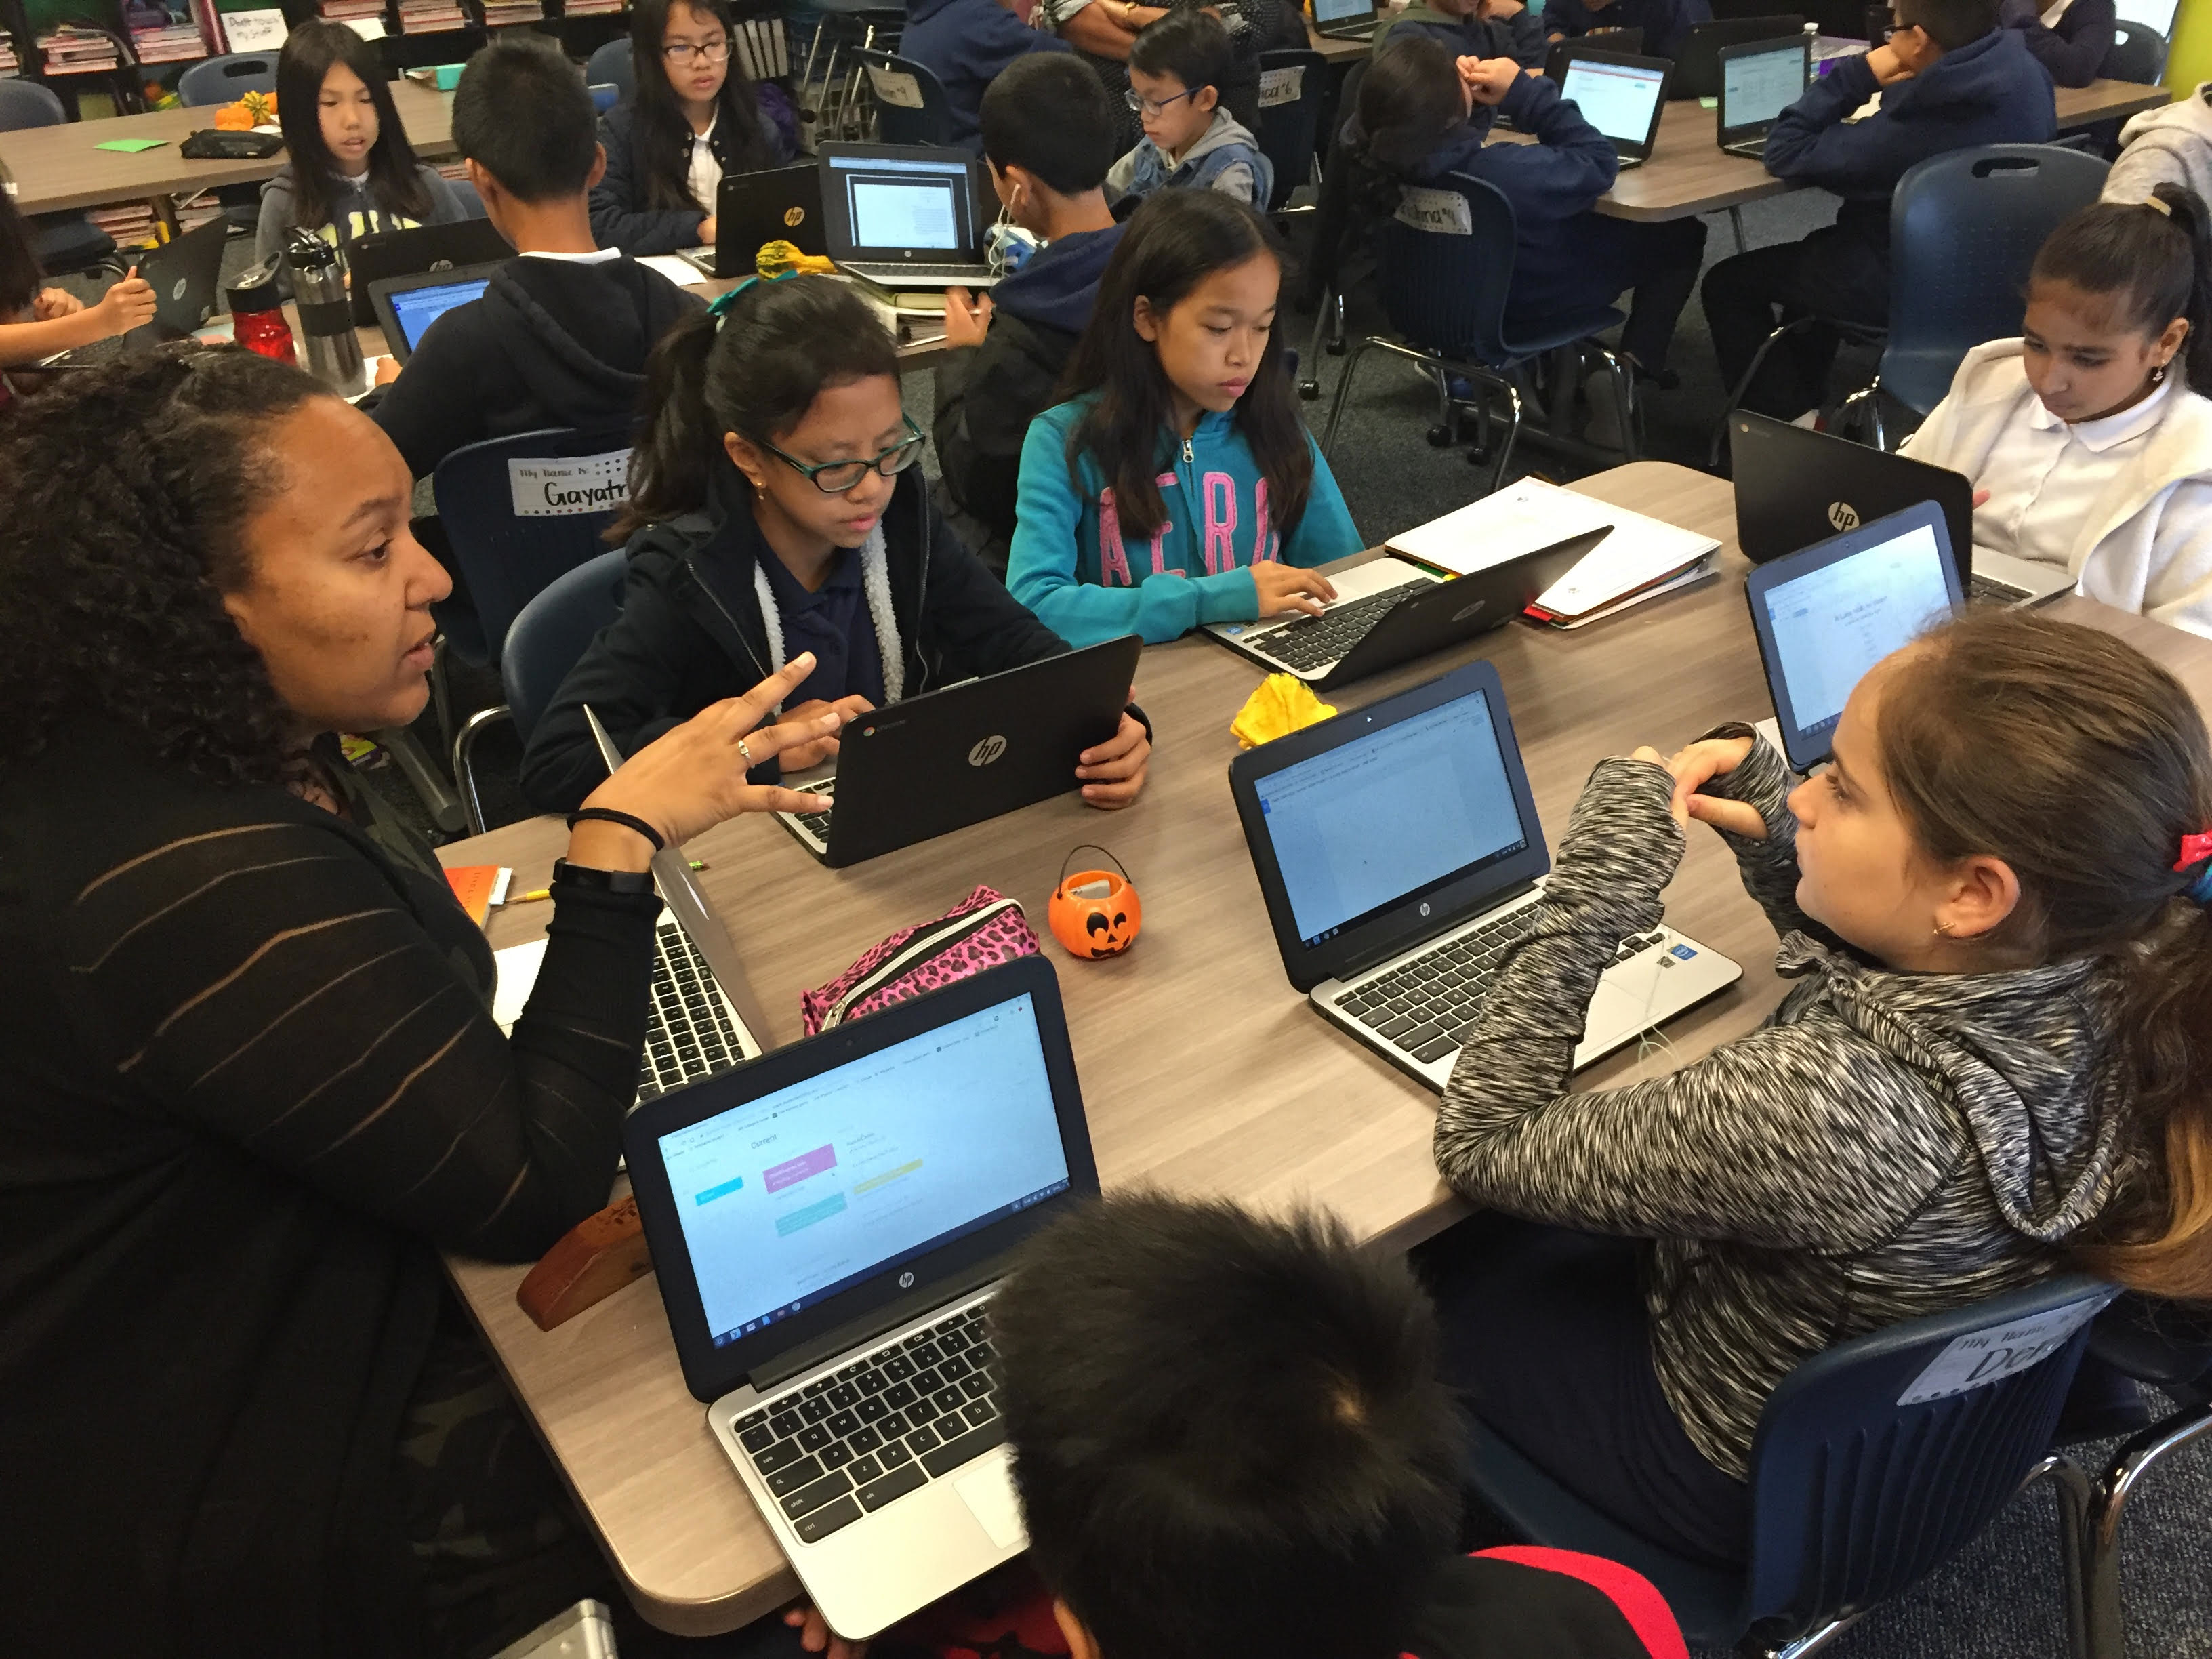 Personalized learning can be a tool for equity or a barrier to it